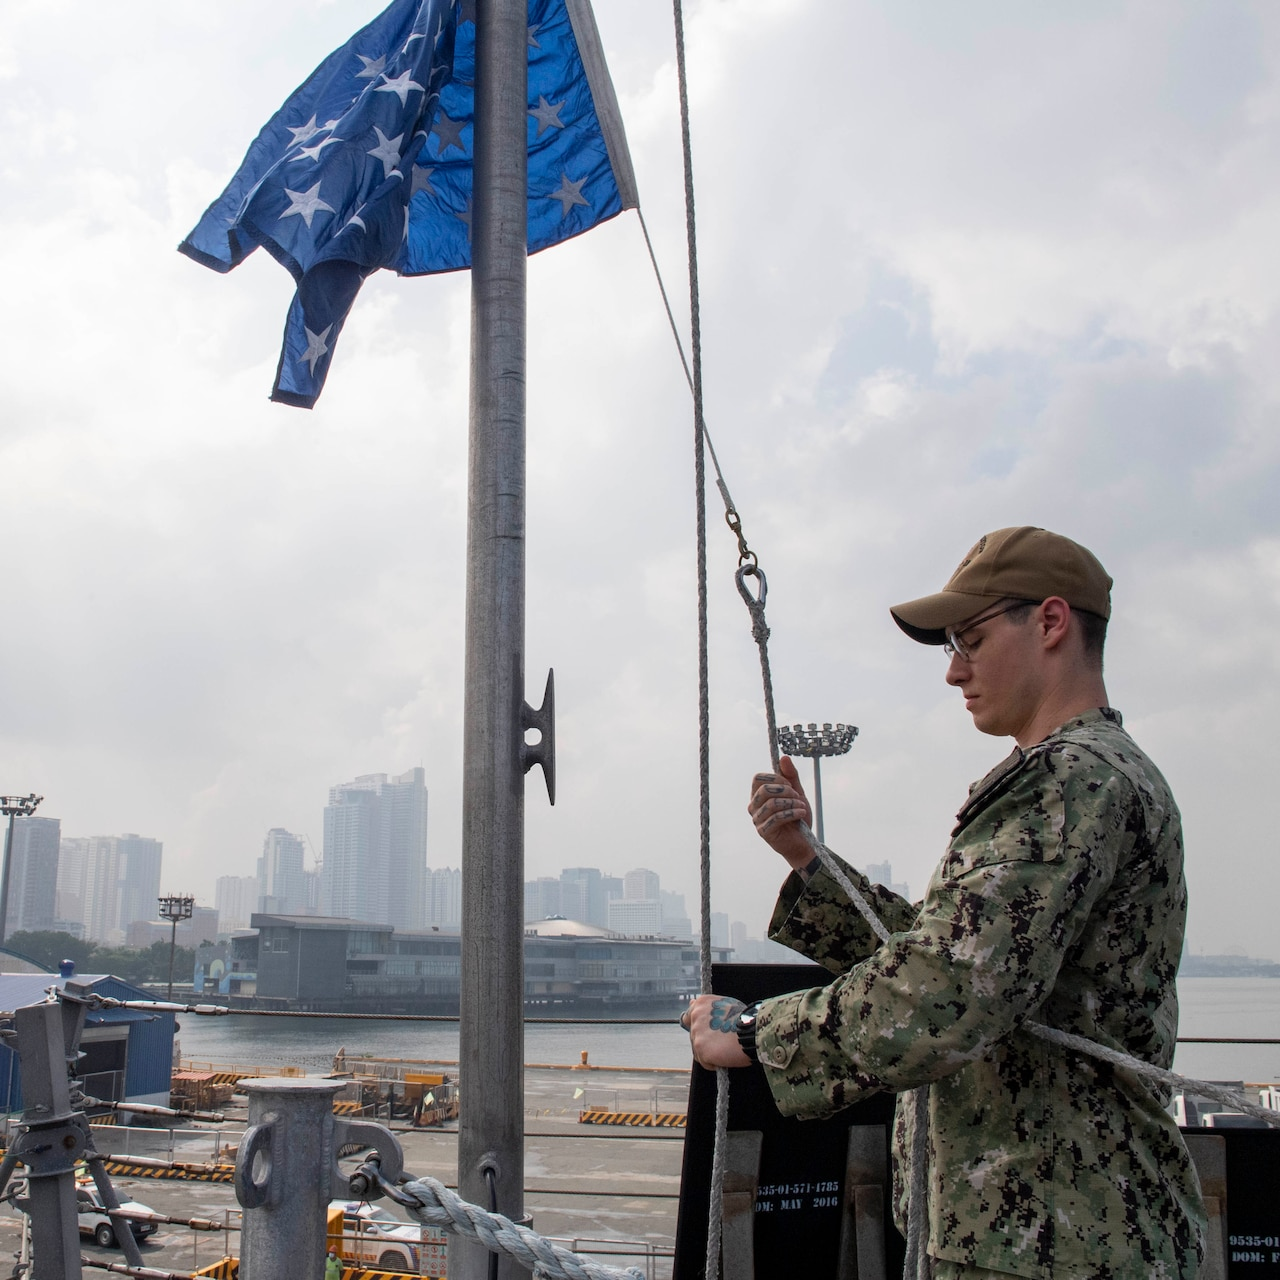 Operations Specialist 2nd Class Andrew Weimer, from Dallas, raises a union jack during a sea and anchor detail aboard Independence-variant littoral combat ship USS Charleston (LCS 18), Aug. 16. Charleston, part of Destroyer Squadron Seven, is on a rotational deployment operating in the U.S. 7th Fleet area of operation to enhance interoperability with partners and serve as a ready-response force in support of a free and open Indo-Pacific region.